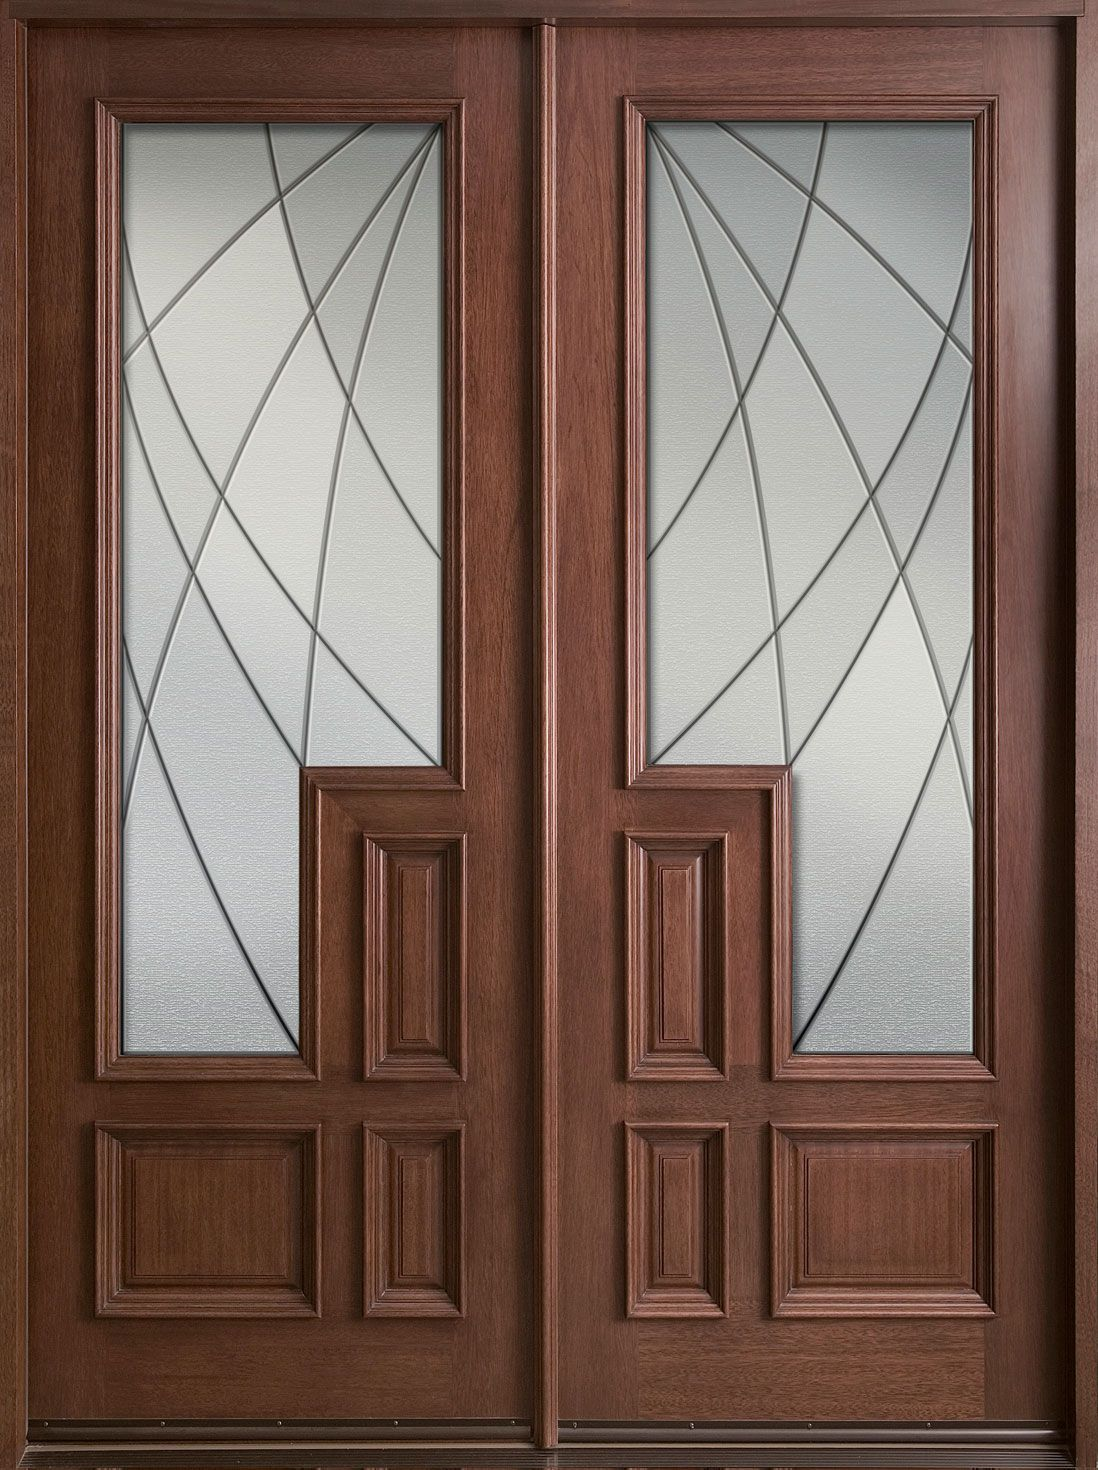 Modern Entryway Doors : Inspiring double fiberglass entry door as furniture for